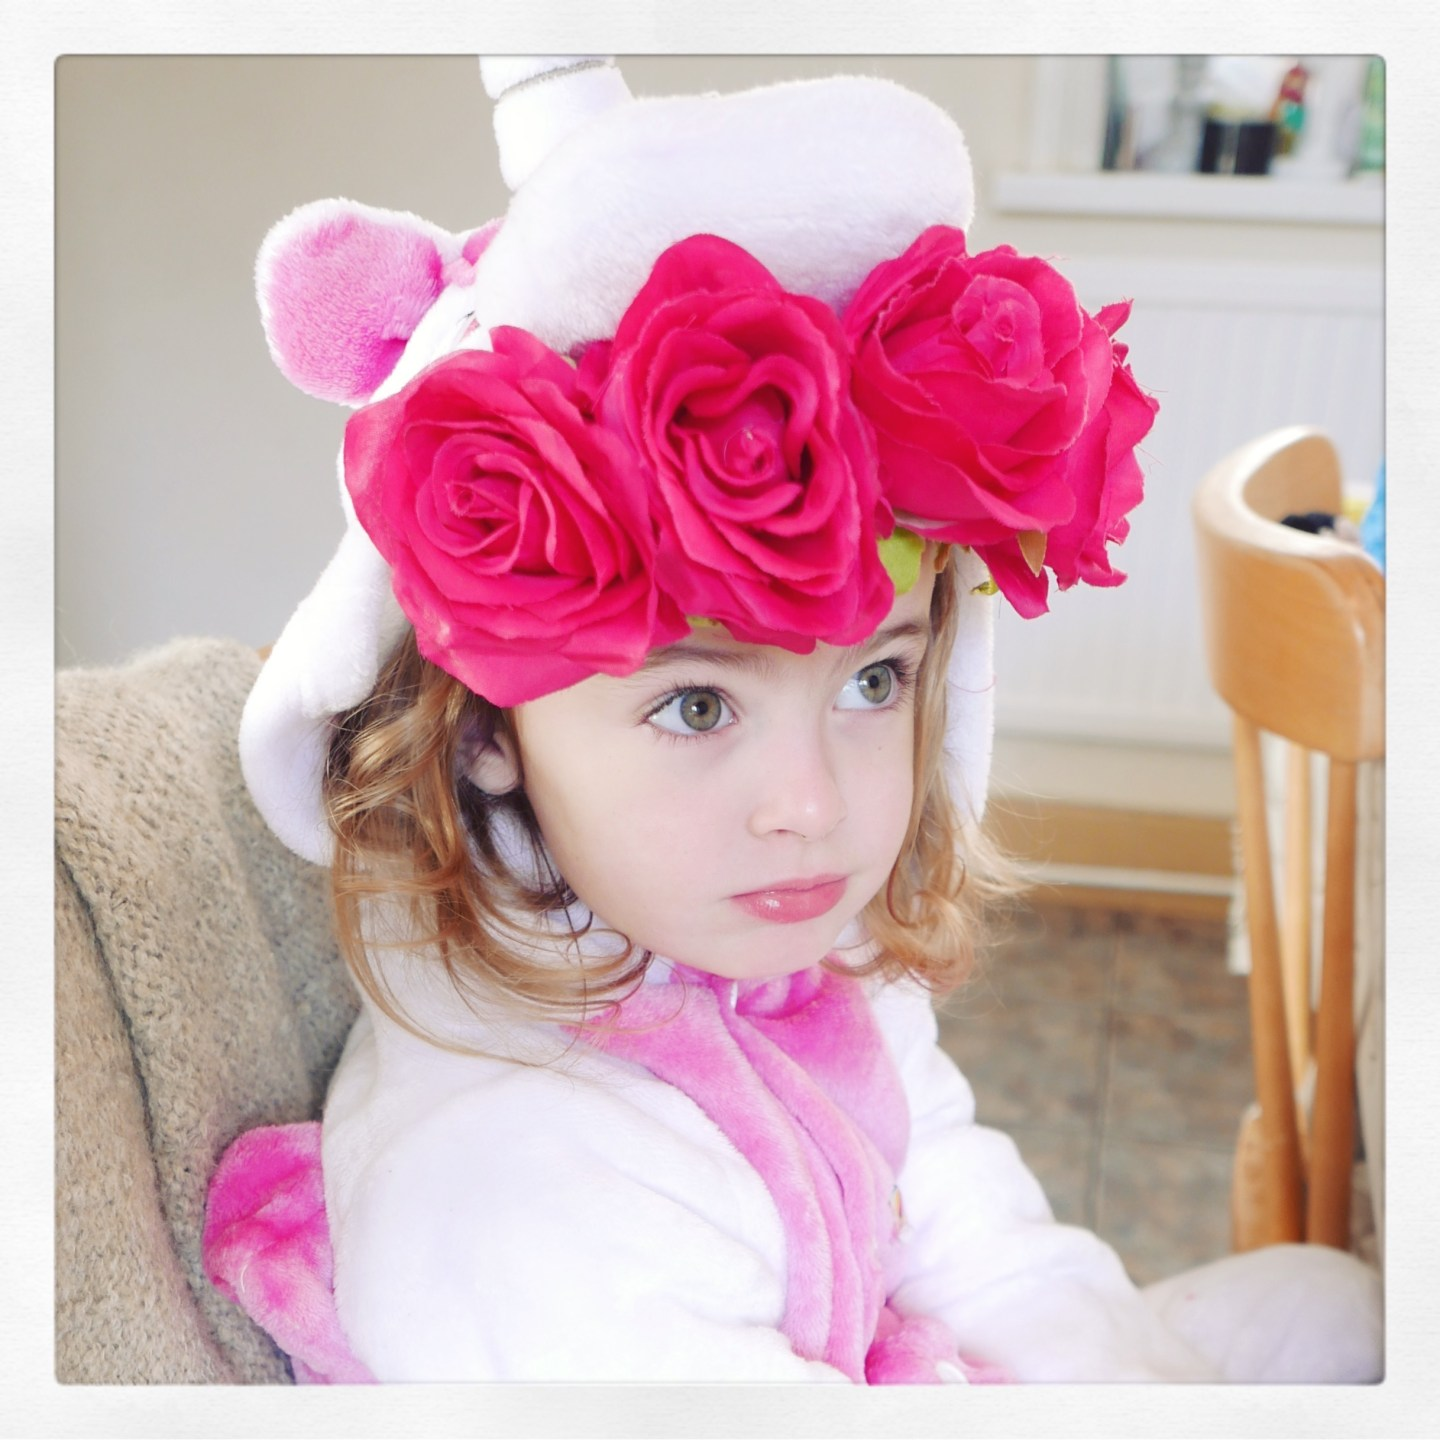 Adorable Unicorn wonderfulness – Poppy style 💕